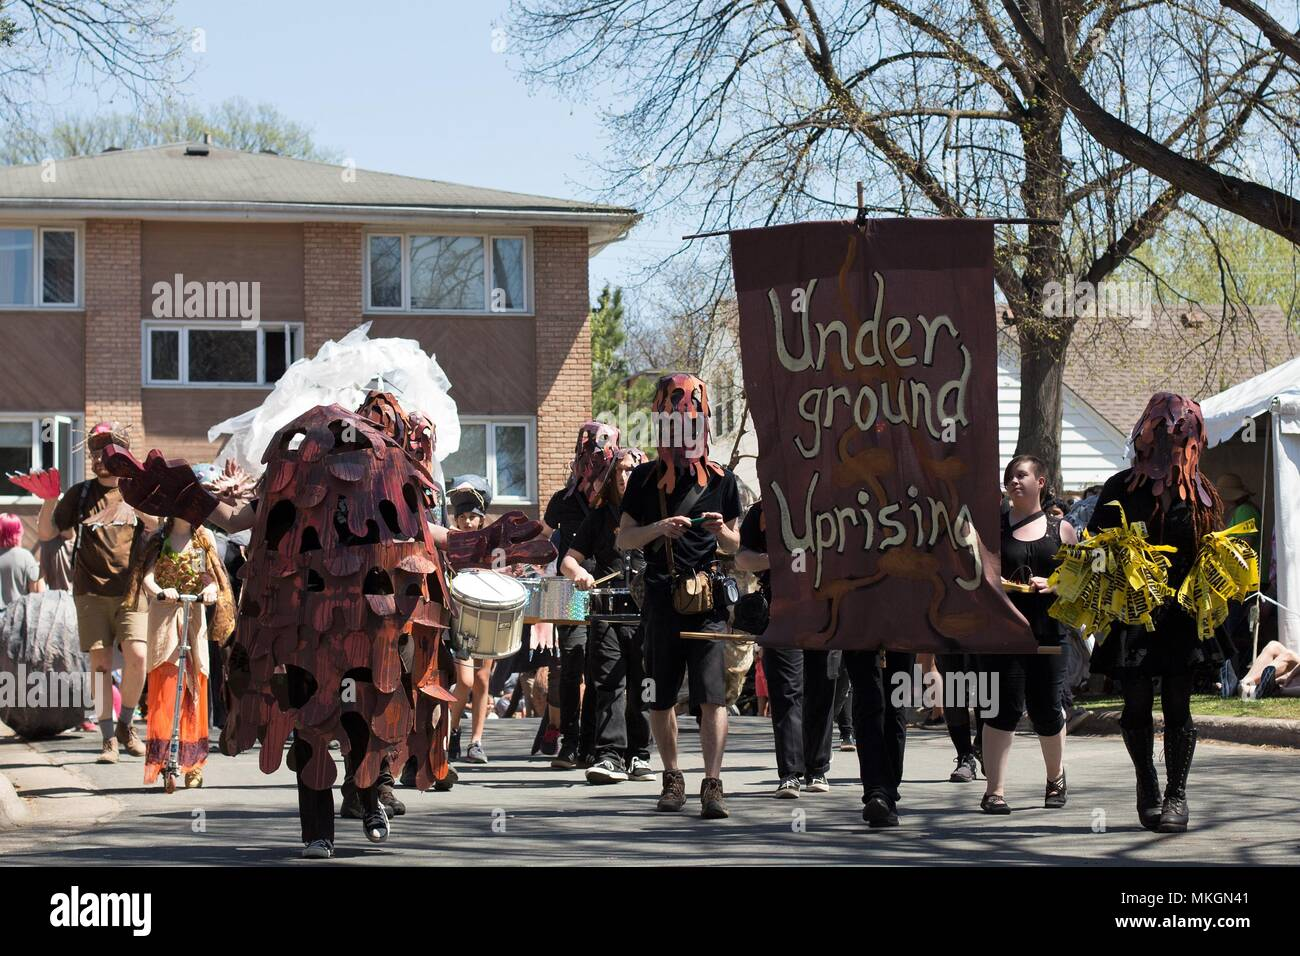 People dressed as hazardous waste, at the May Day festival in Minneapolis, Minnesota, USA. - Stock Image